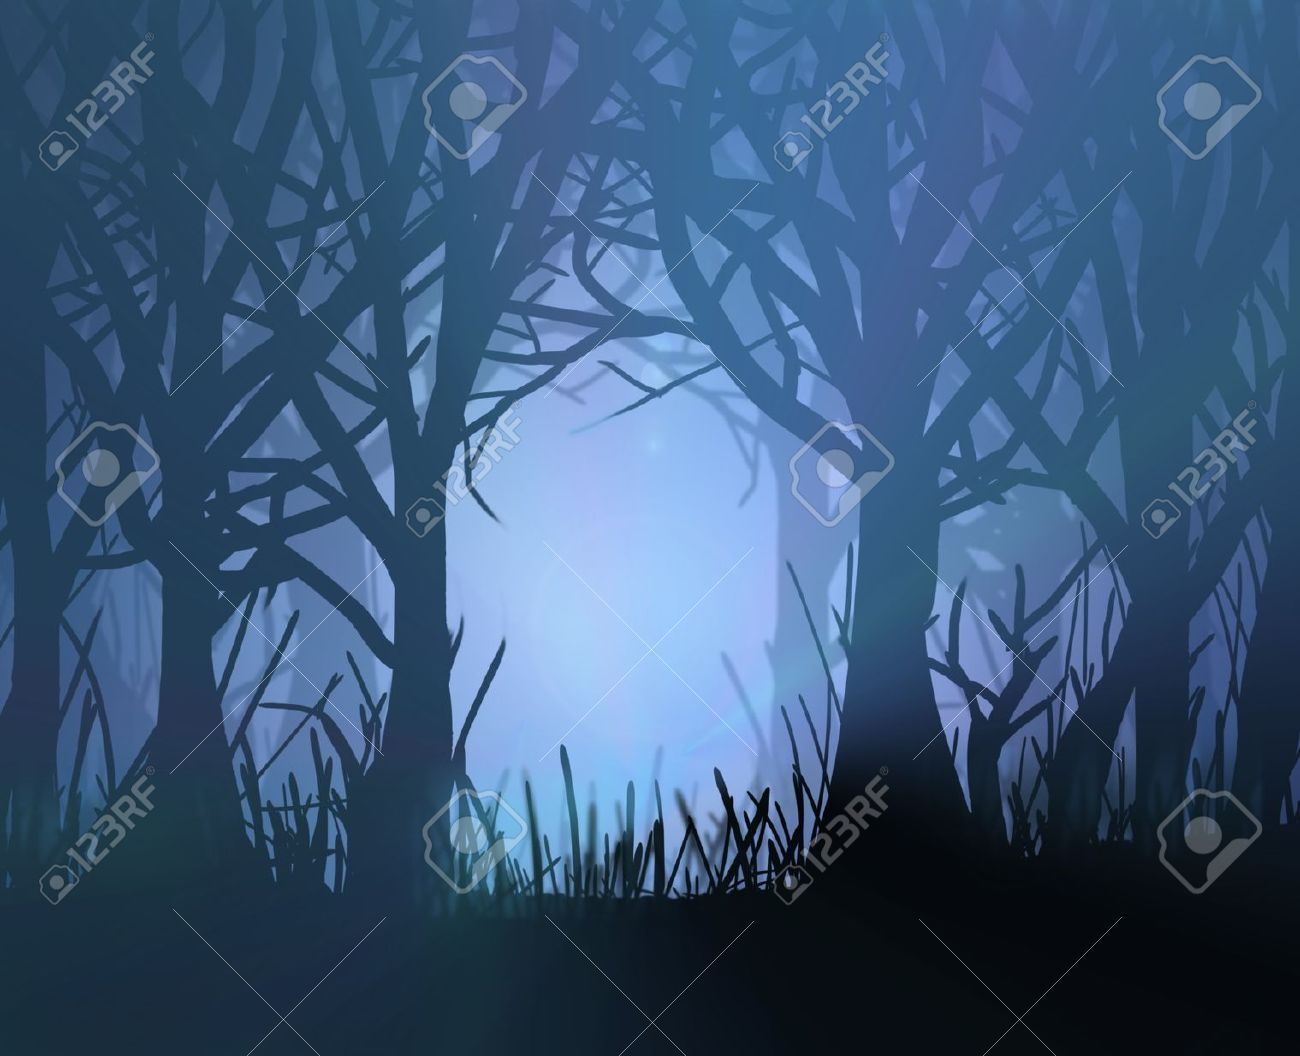 1300x1056 Dark Forest Stock Vector Illustration And Royalty Free Dark Forest